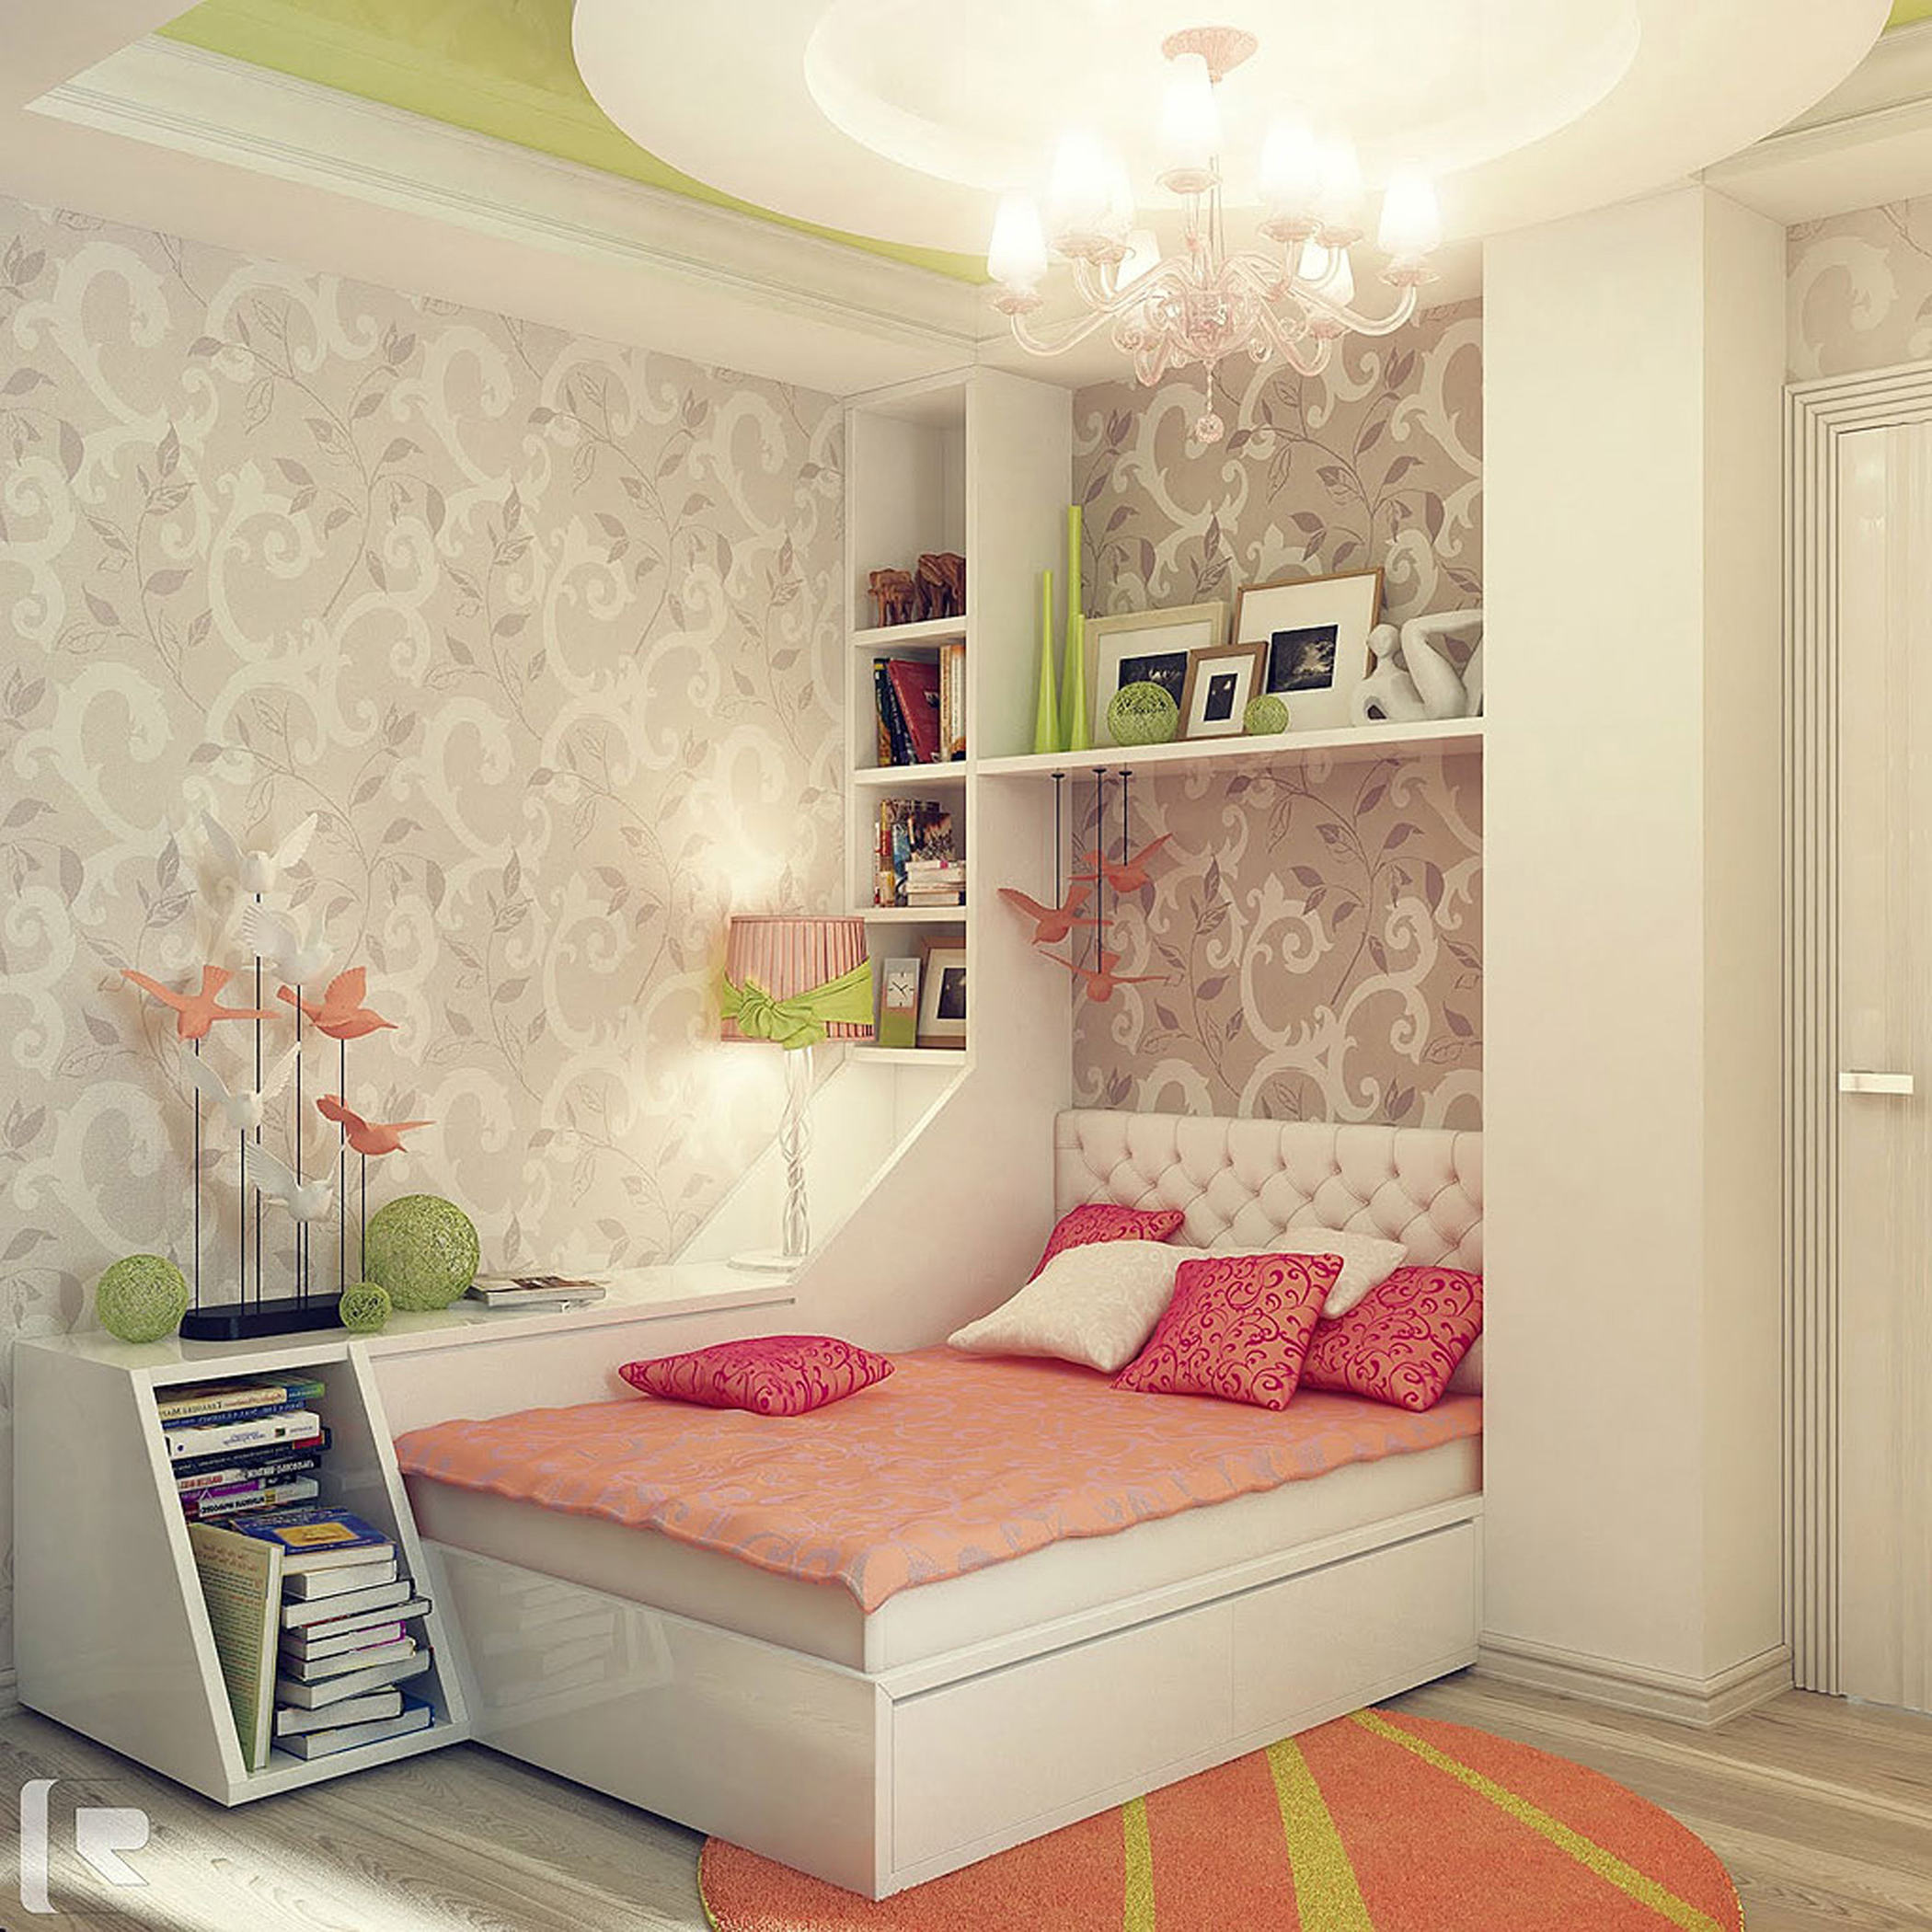 Minimalist Girls Design With White Bed Frame With Pink And White Pillows And Gray Wallpaper With White Open Shelf Along With White Chandelier Cool Design Bedroom Ideas For Girls Bedroom (View 2 of 25)